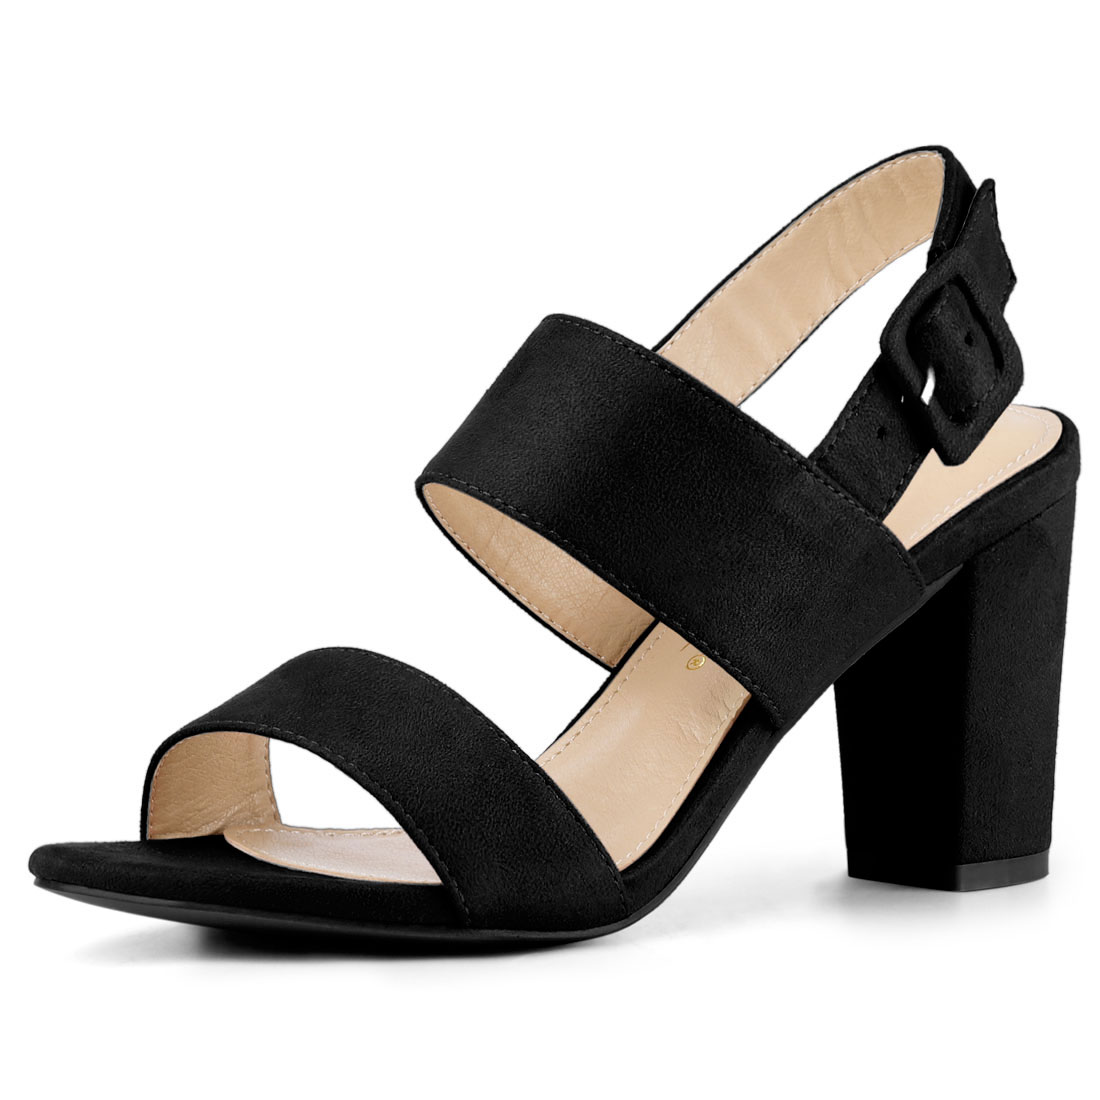 Women Open Toe Slingback High Block Heel Sandals Black US 10